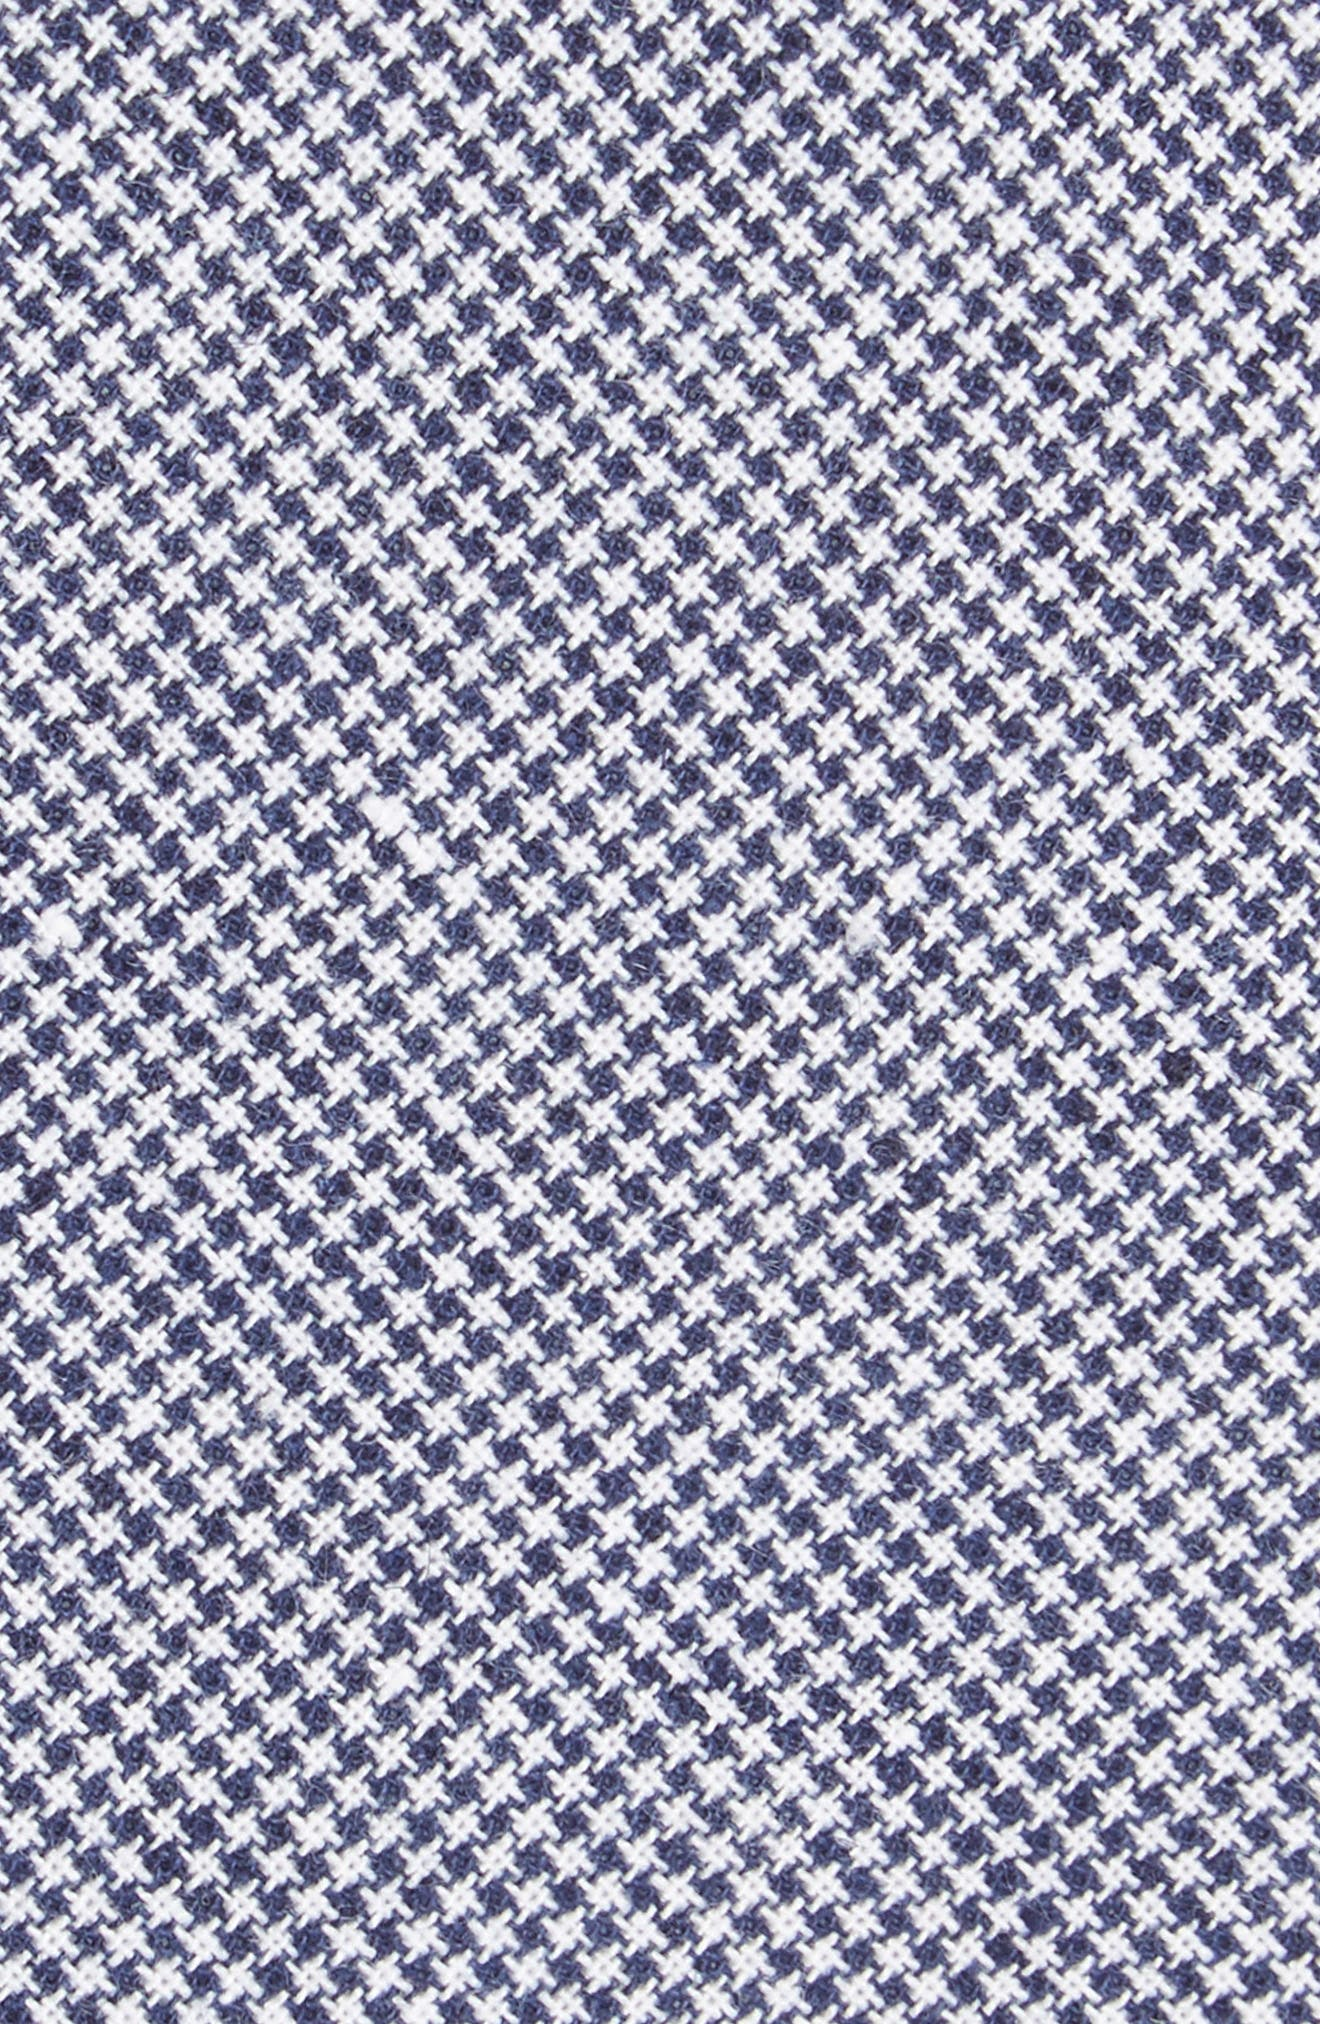 Ralph Houndstooth Cotton & Linen Tie,                             Alternate thumbnail 2, color,                             410